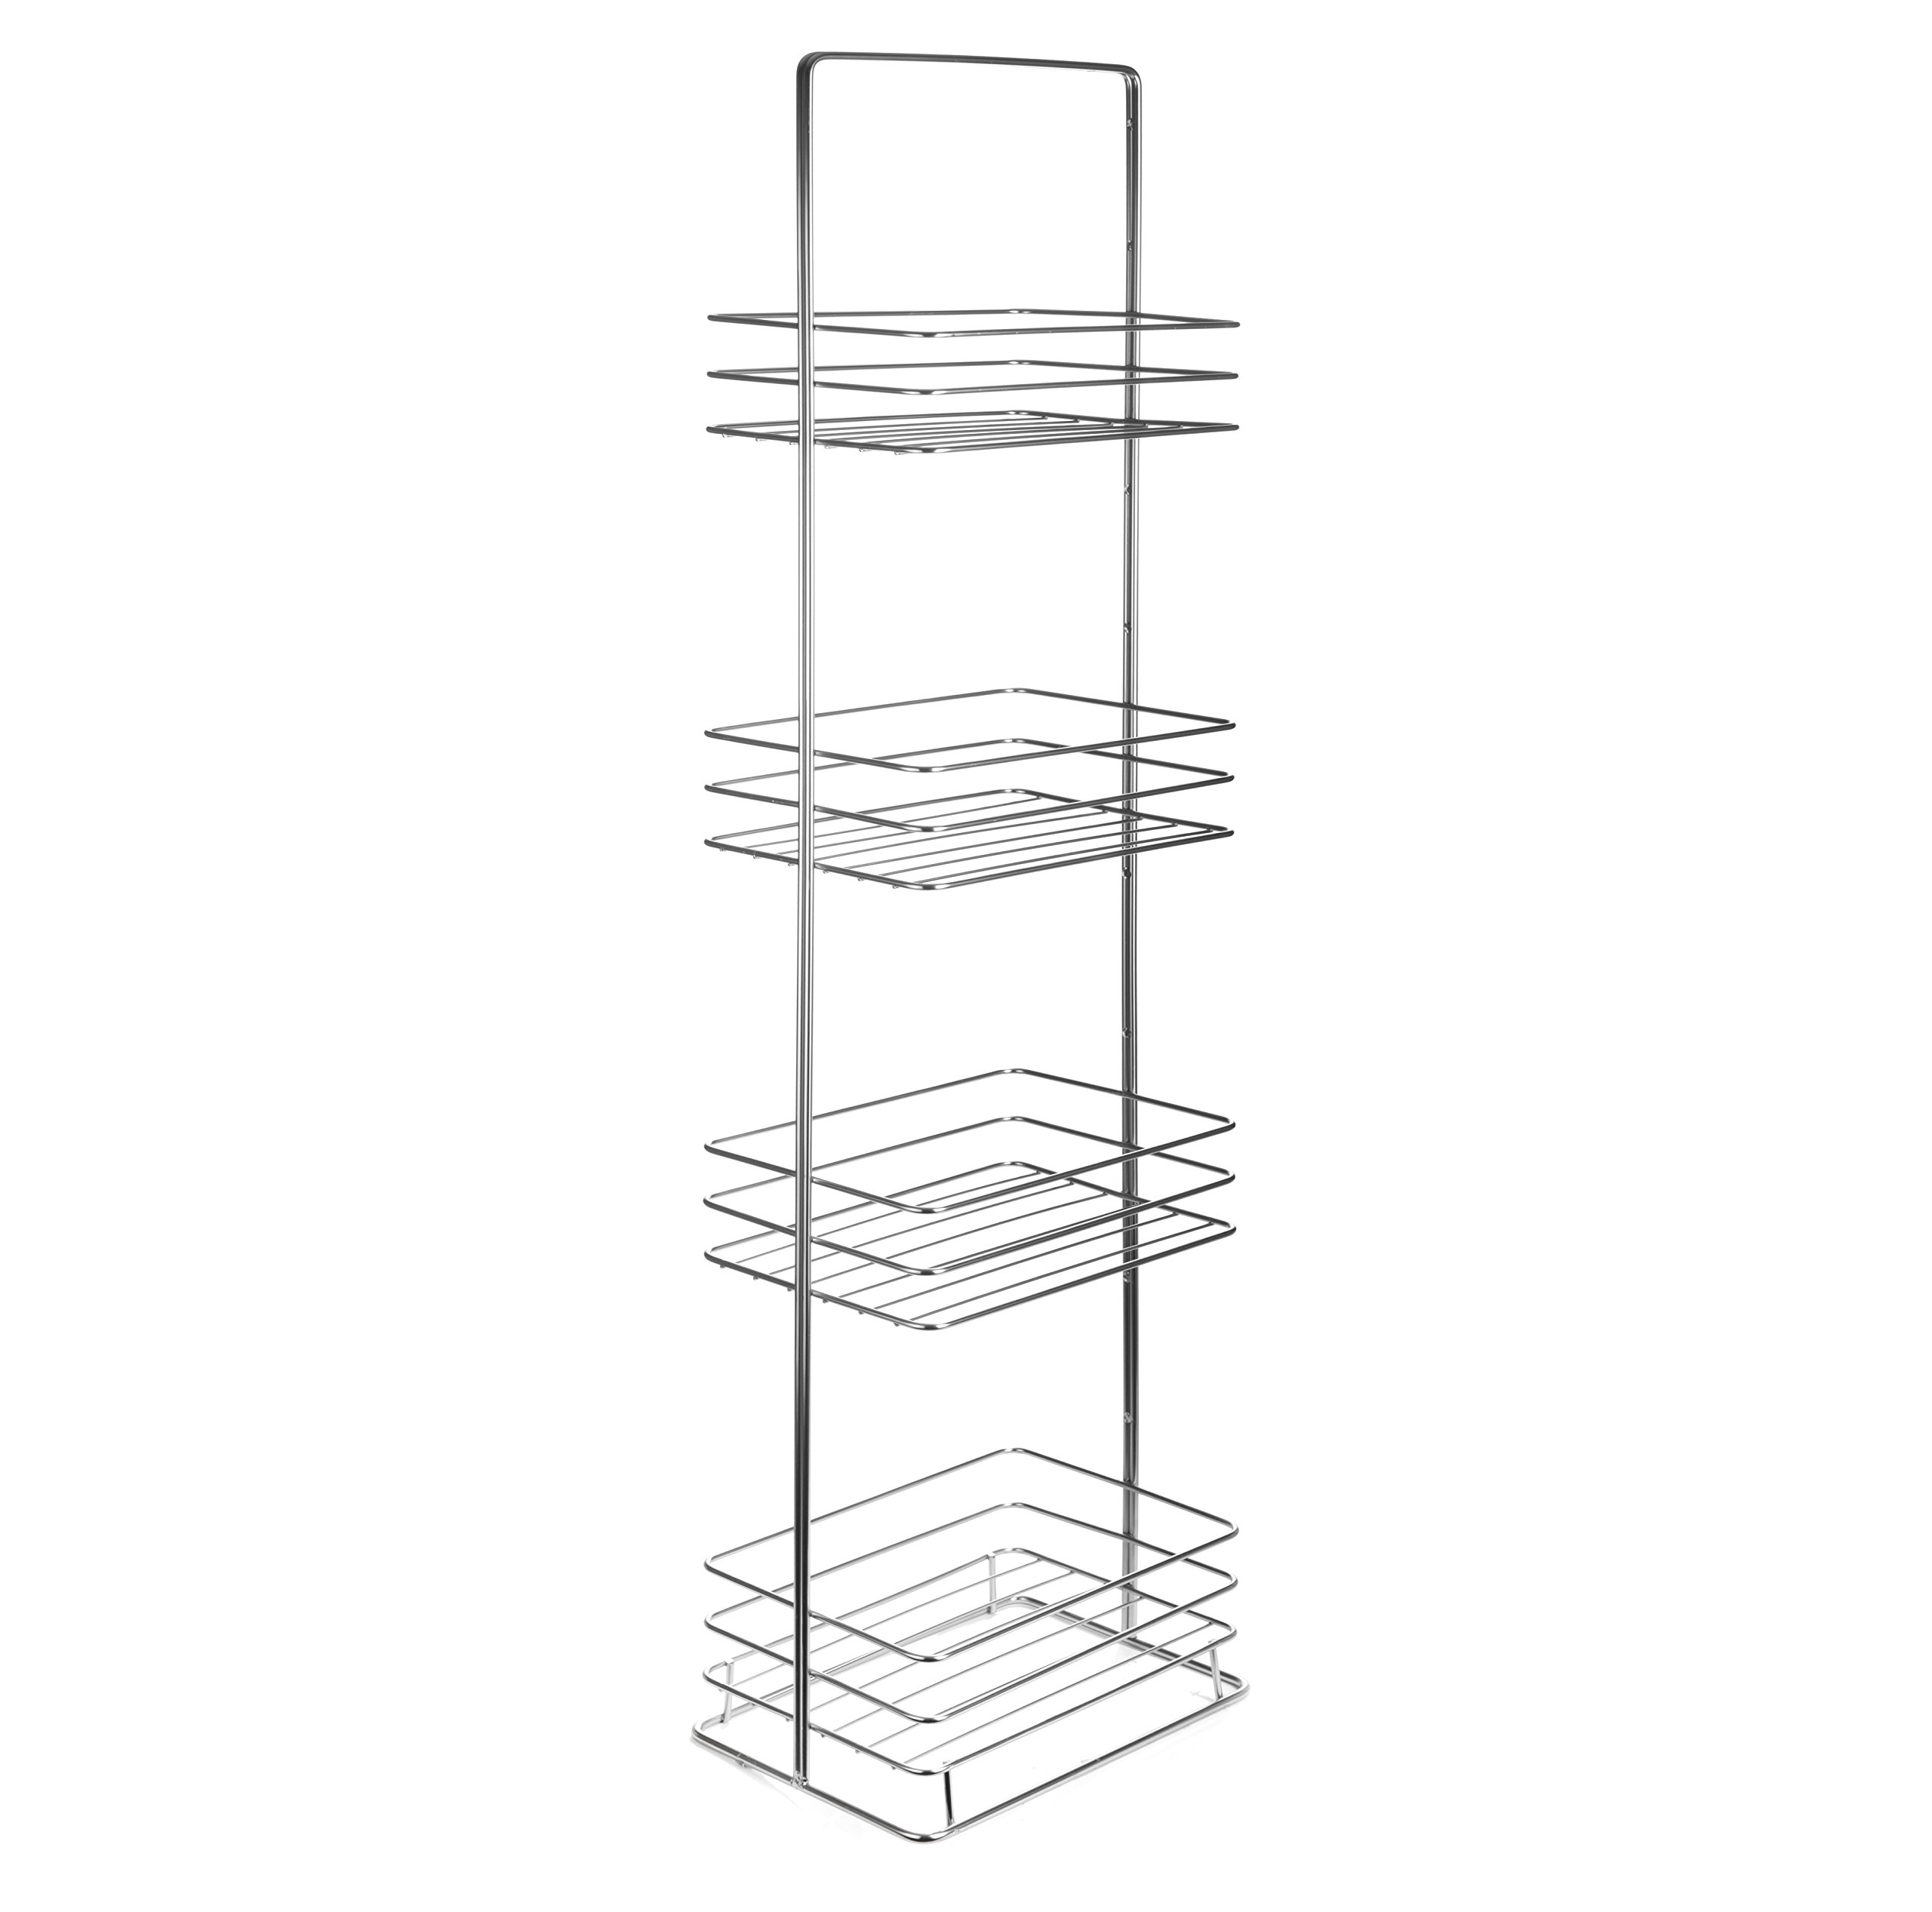 AMG and Enchante Accessories Free Standing Bathroom Spa Tower Storage Caddy, FC100002 CHR, Chrome by AMG (Image #6)